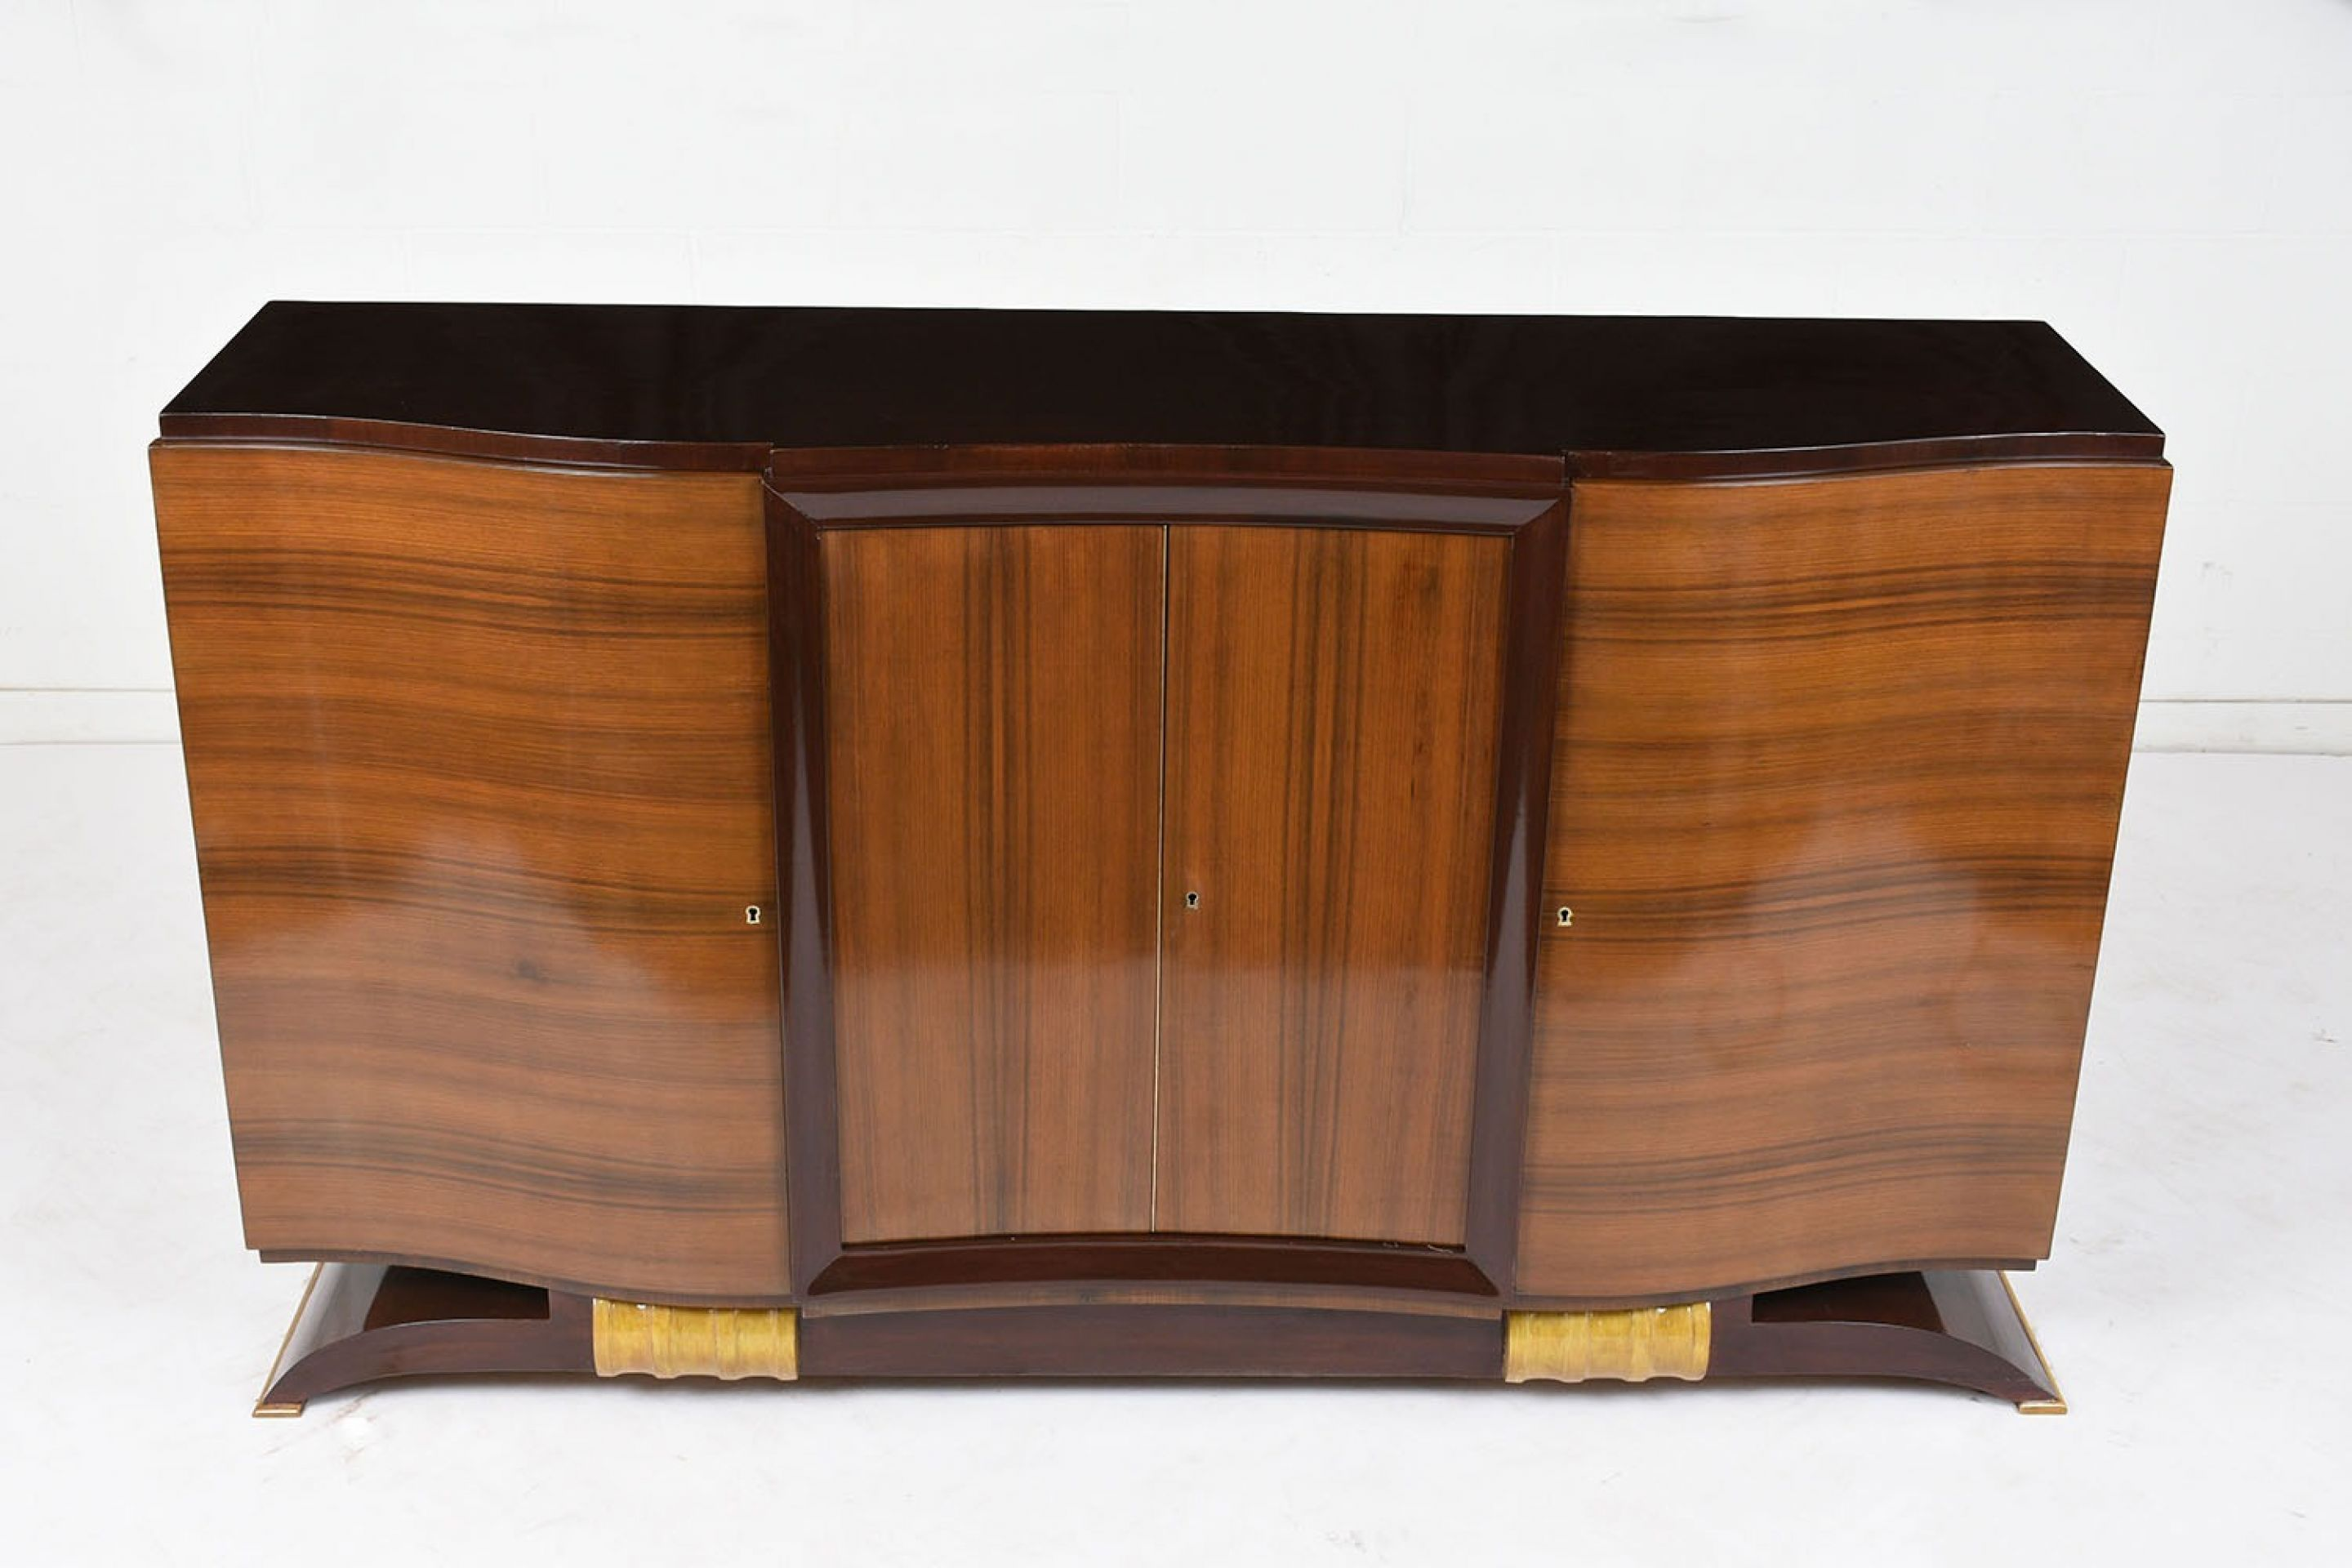 1930s French Art Deco Style Buffet